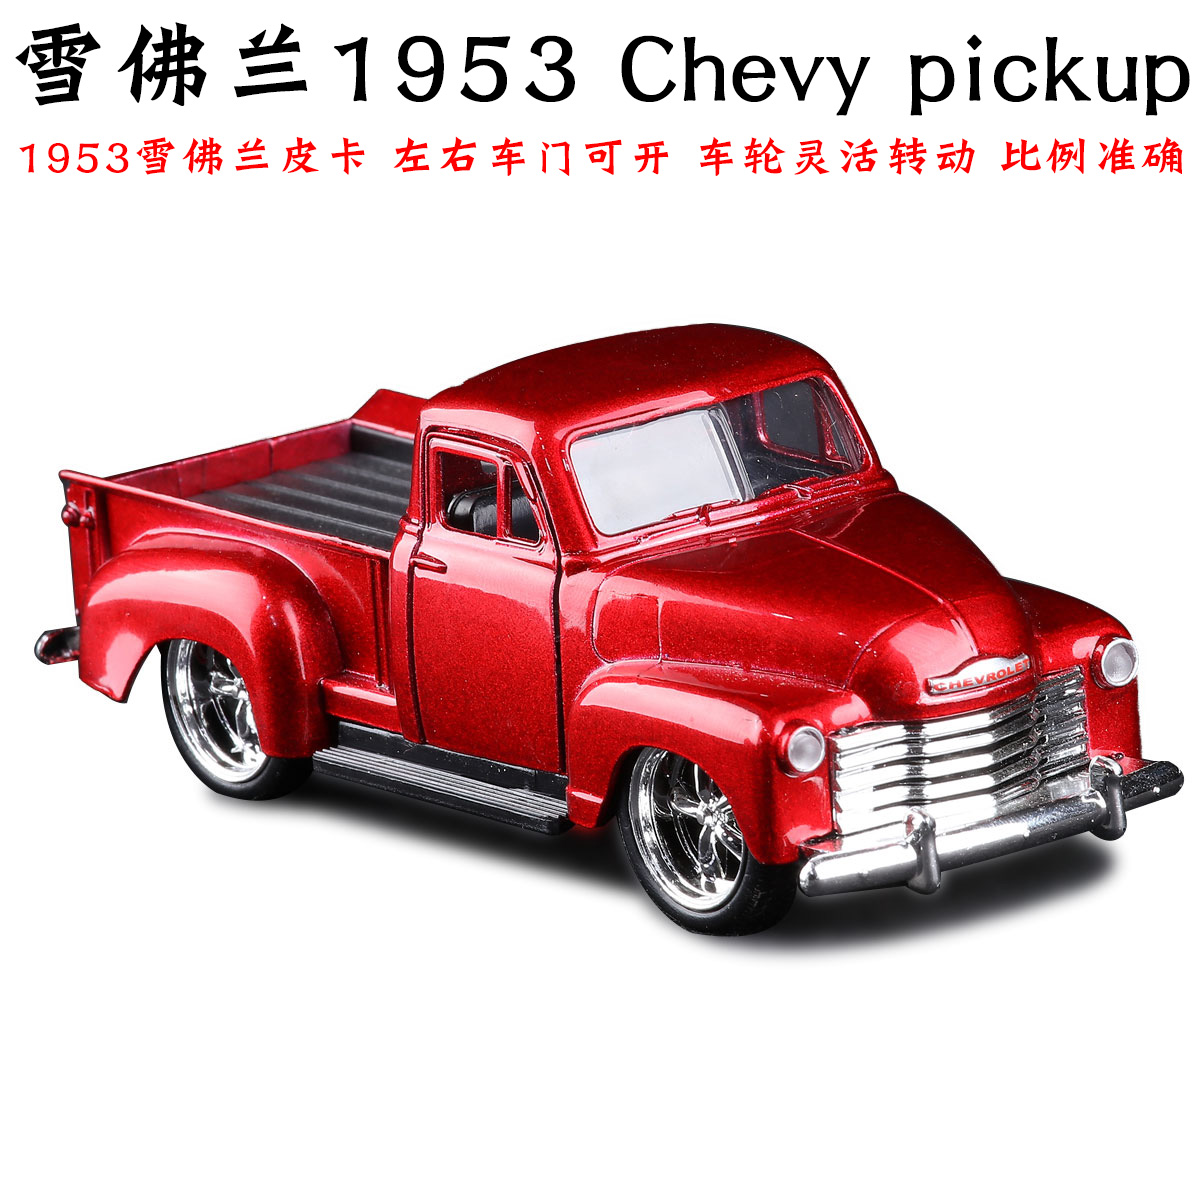 jada 1 32 scale high simulation alloy model car chevrolet chevy 1953 pickup quality toy models. Black Bedroom Furniture Sets. Home Design Ideas